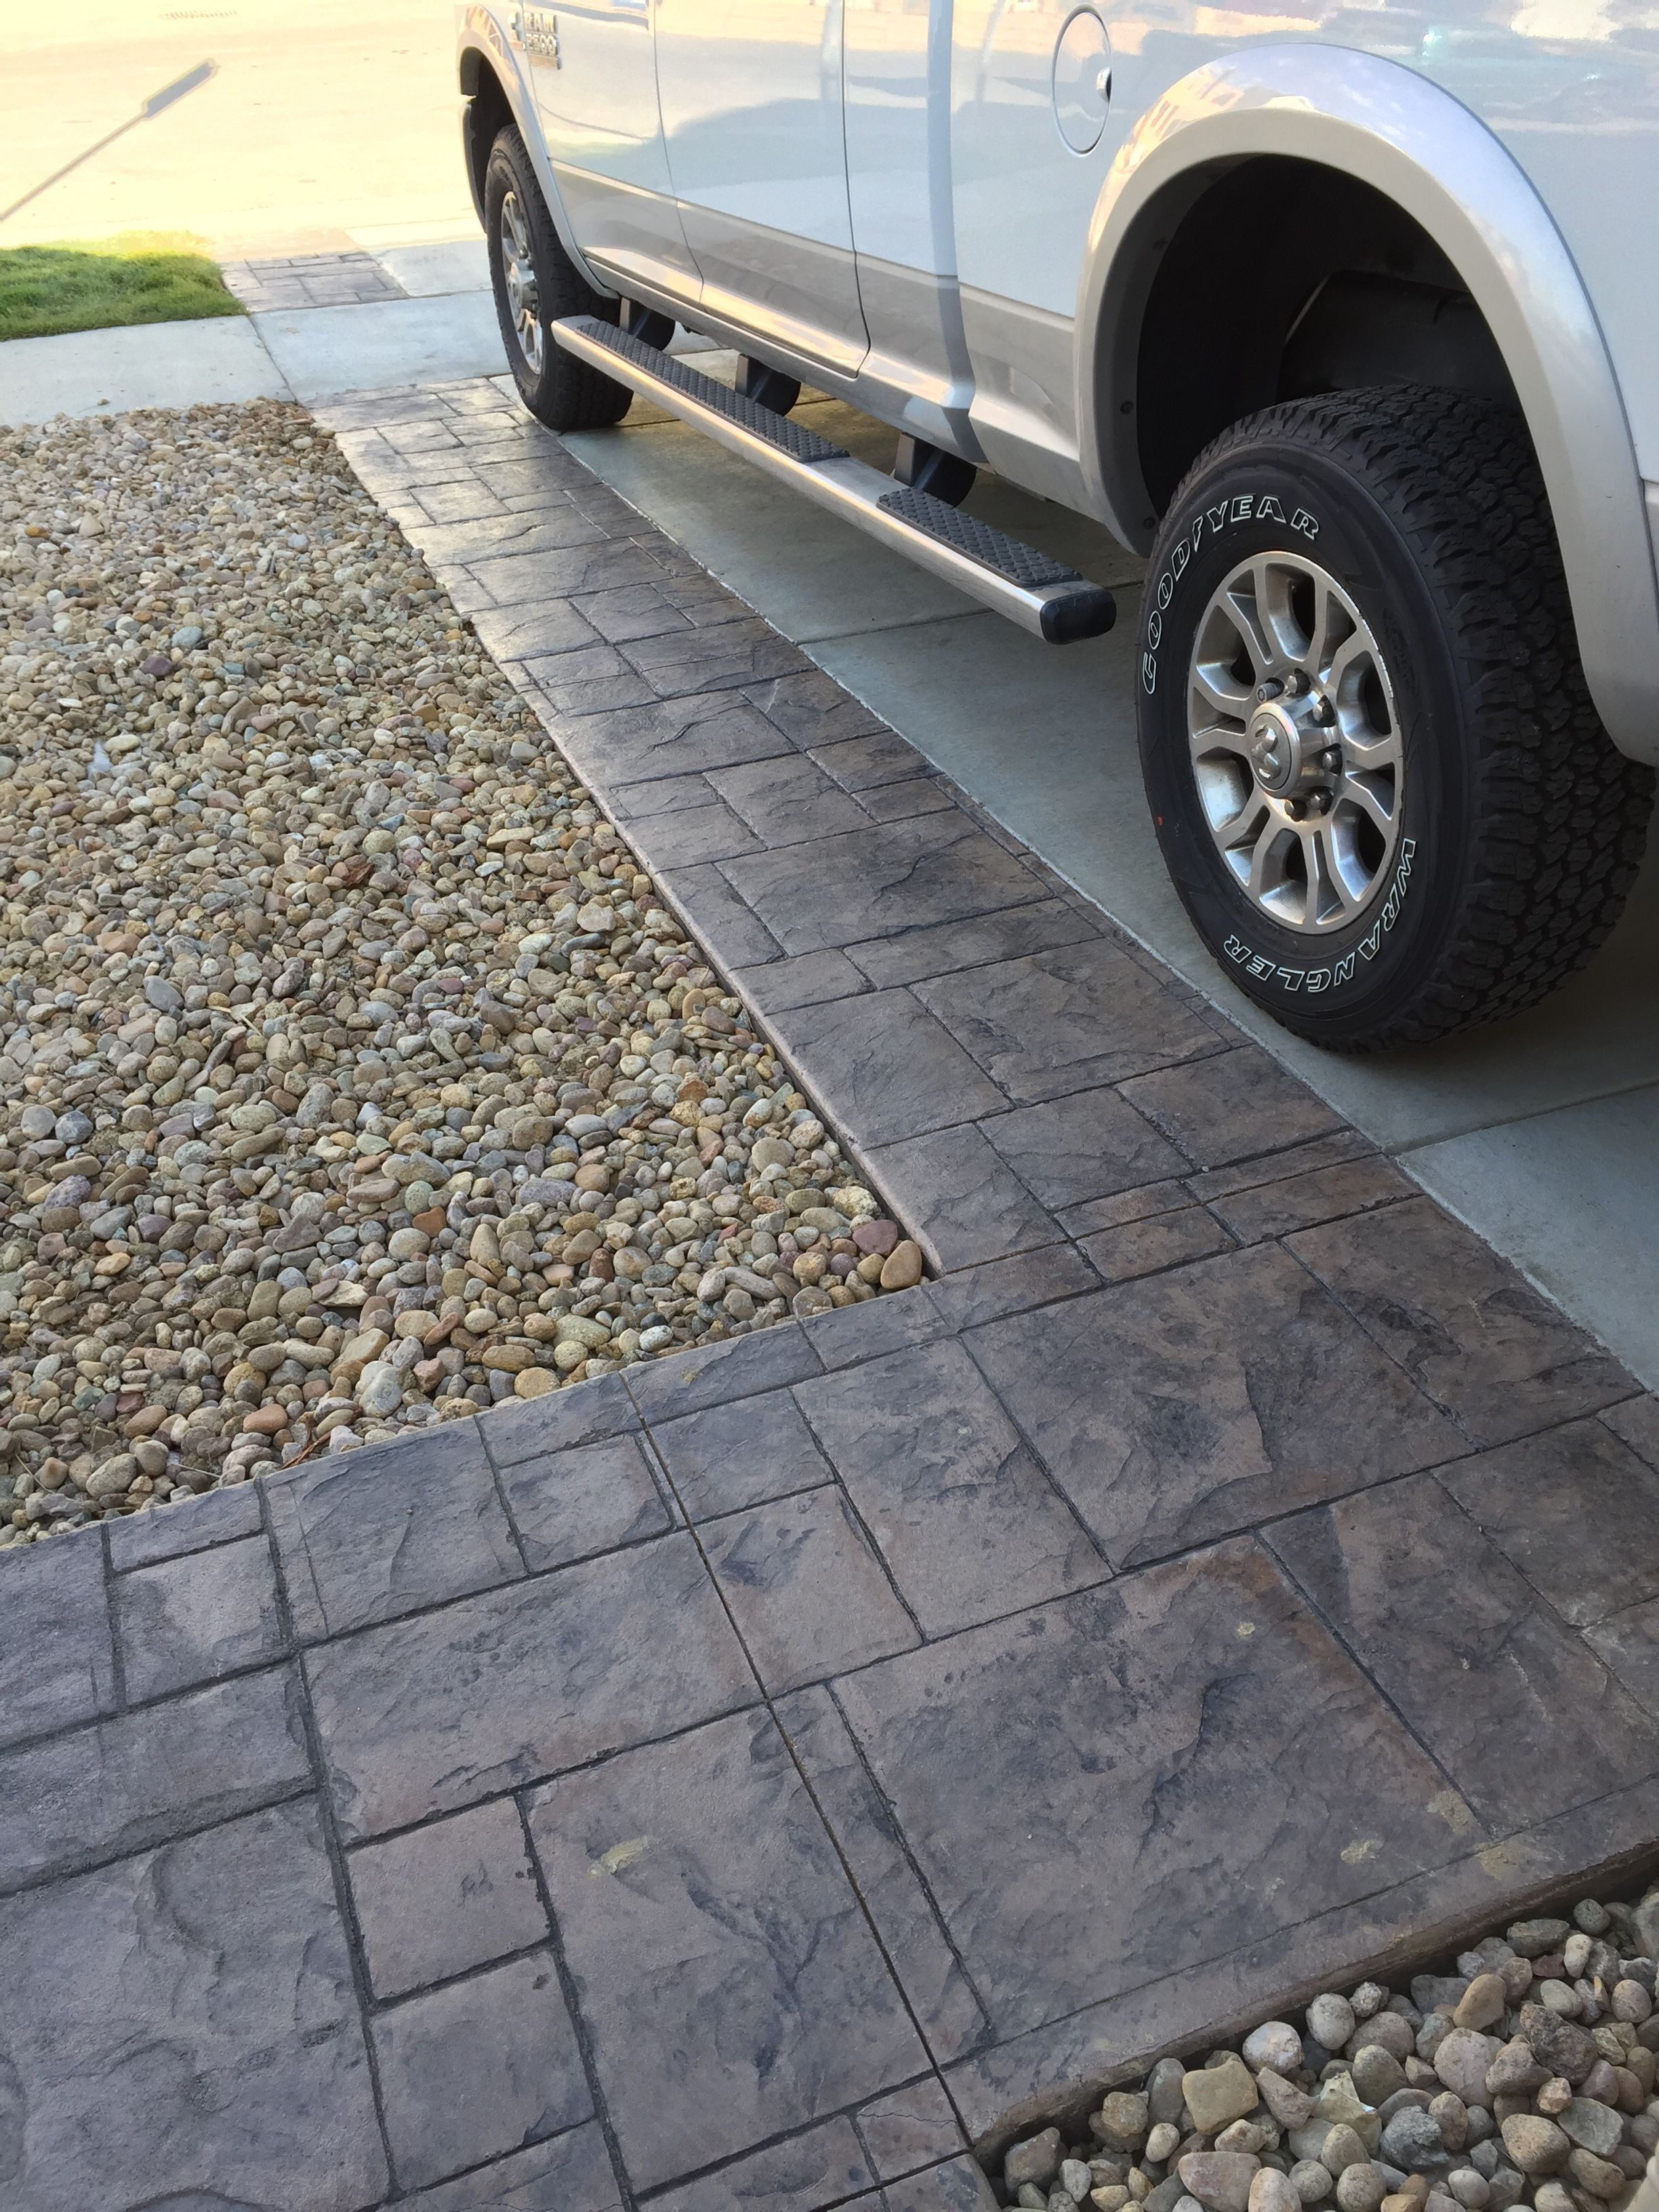 Driveway Extension In Grand Ashlar Stamped Concrete With